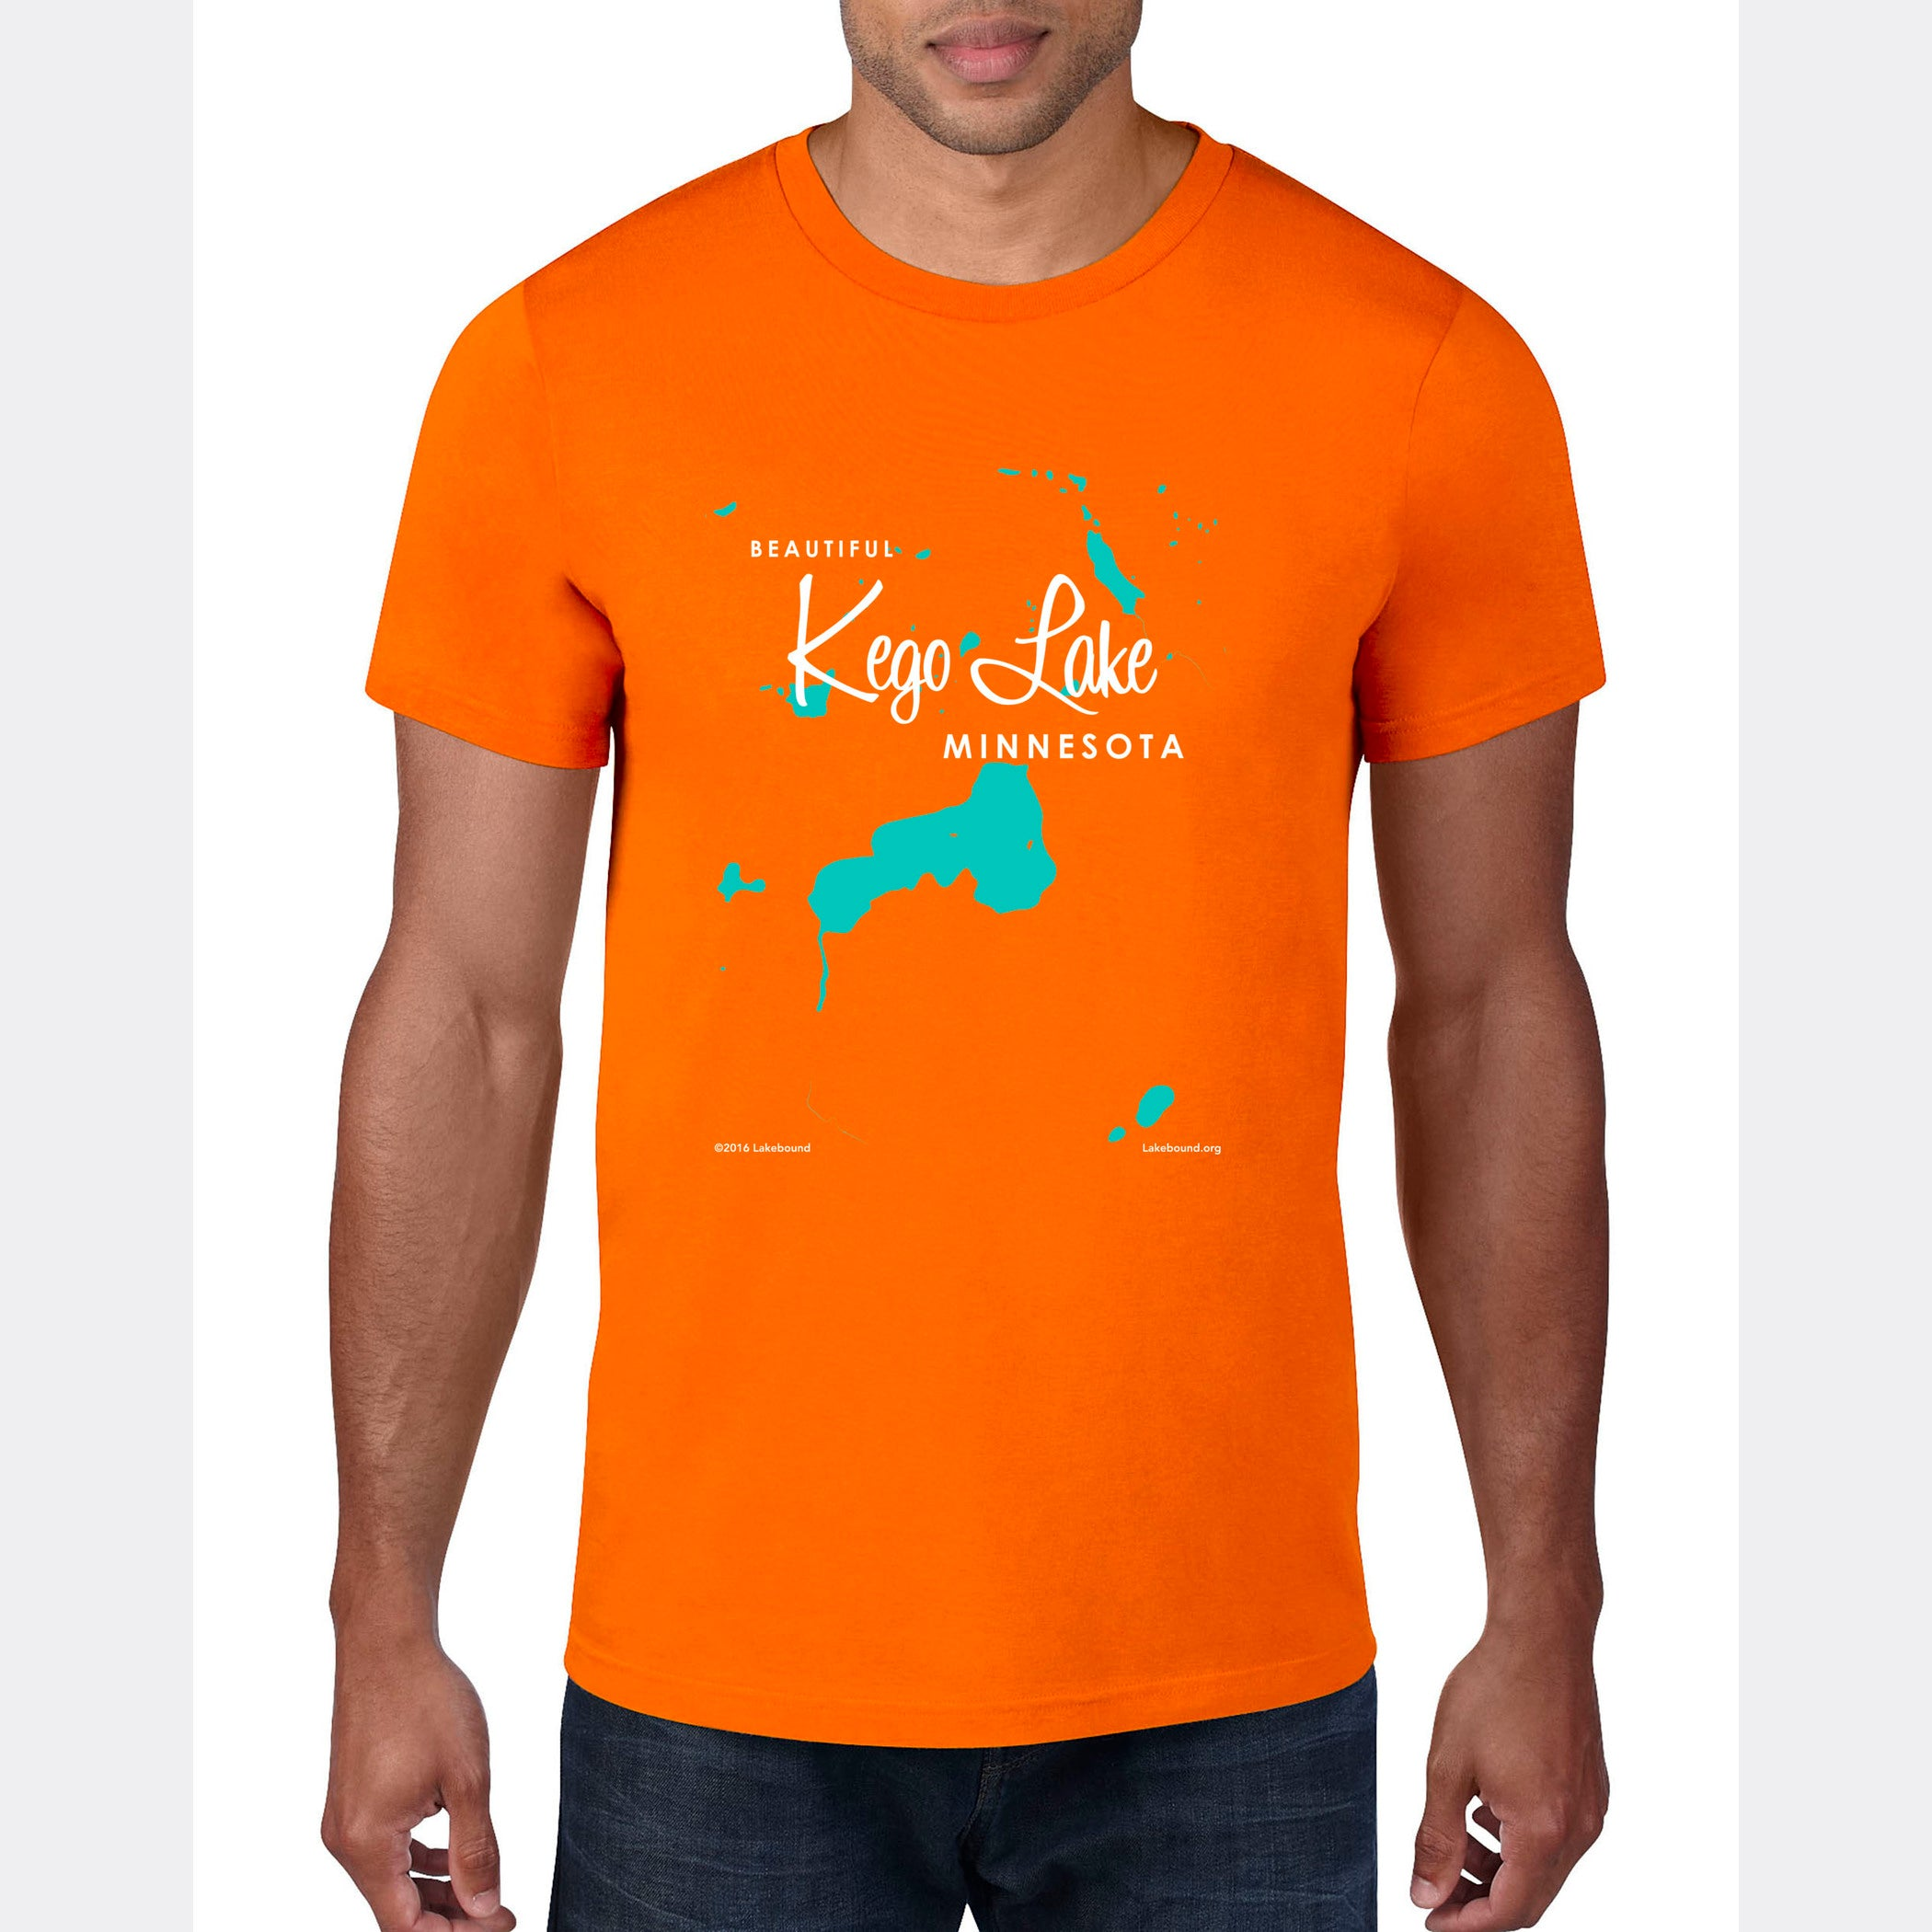 Kego Lake Minnesota, T-Shirt